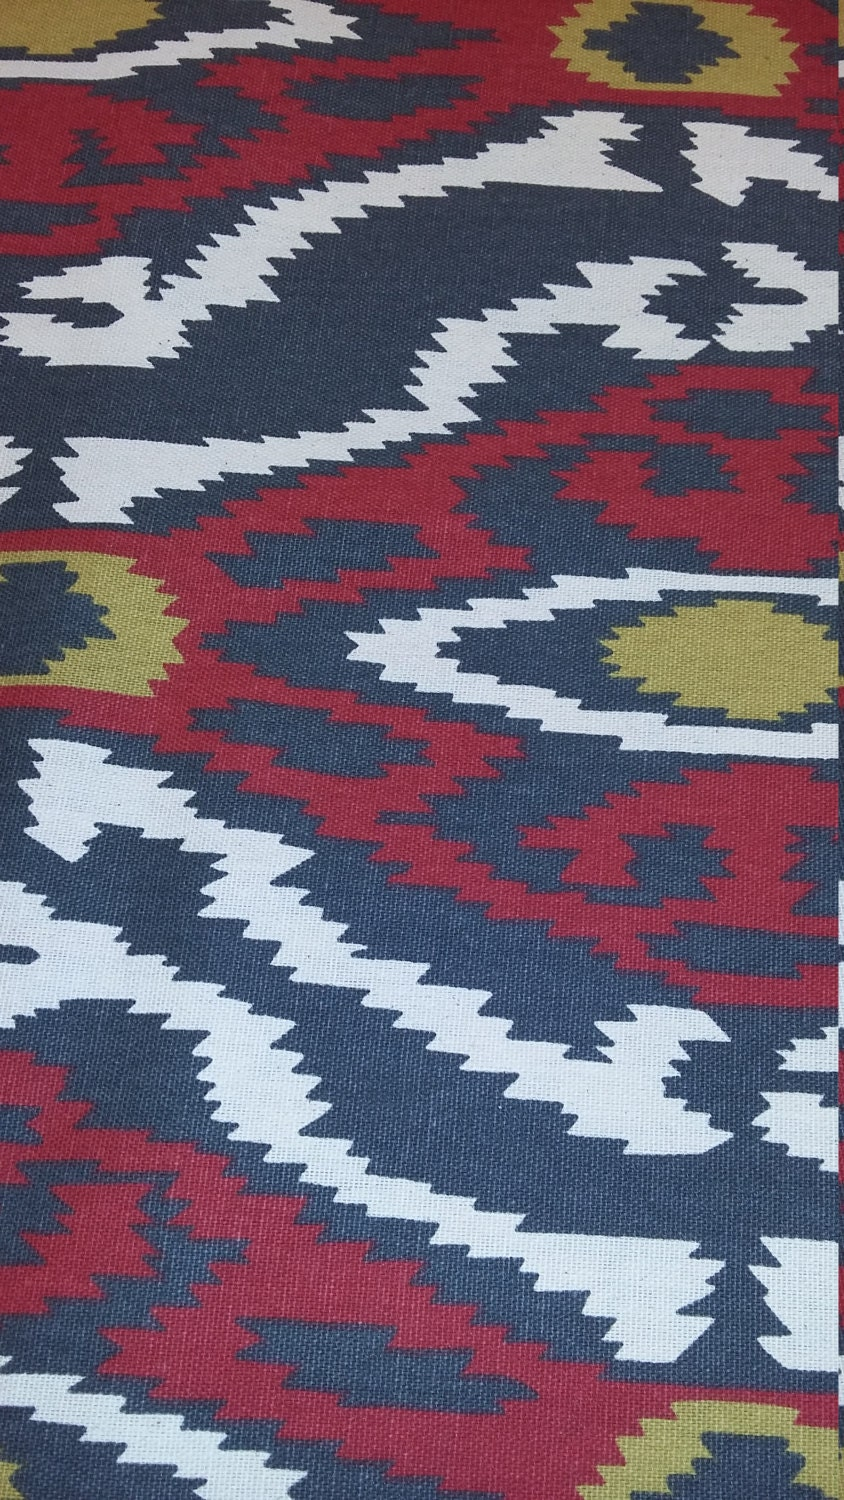 tribal upholstery fabric by the yard for home decor. Black Bedroom Furniture Sets. Home Design Ideas